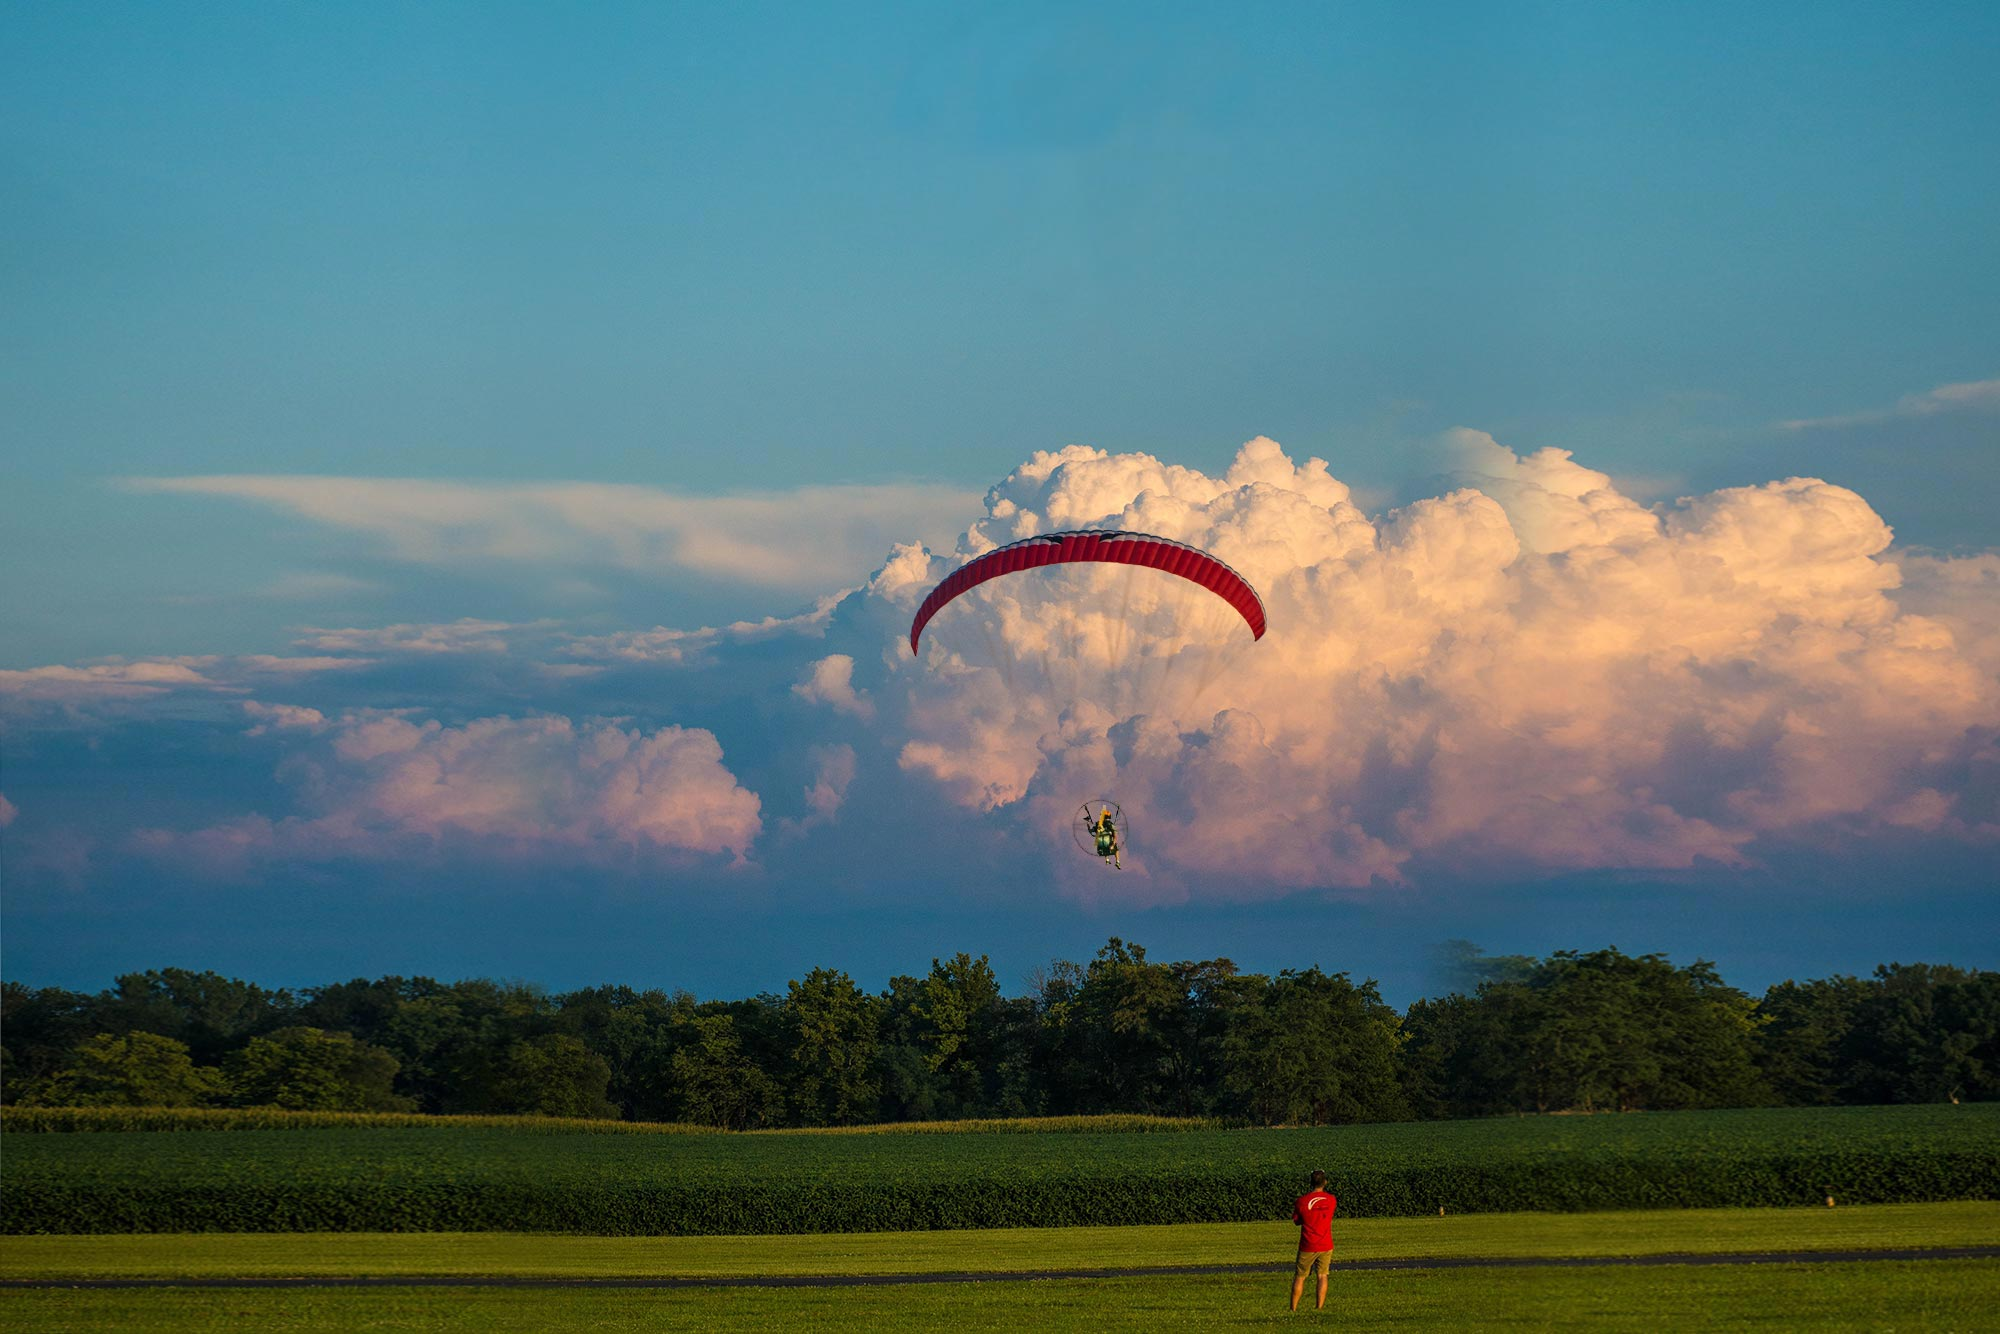 Midwest Powered Paragliding | The Premier Paramotor Training